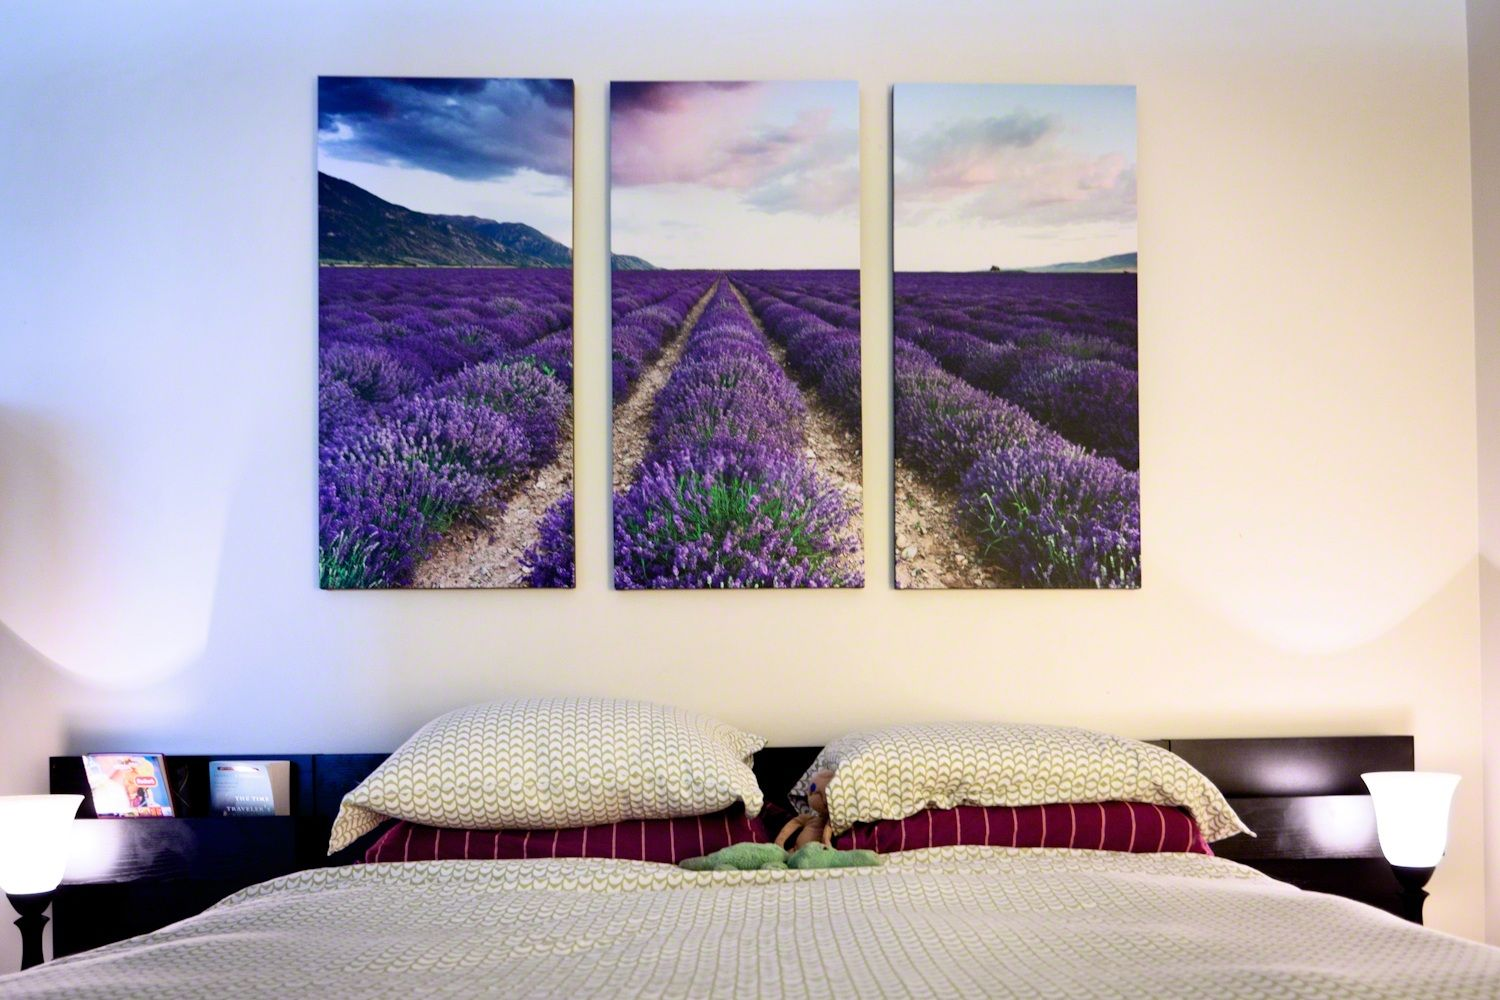 Lilac blossoming field on three pictures